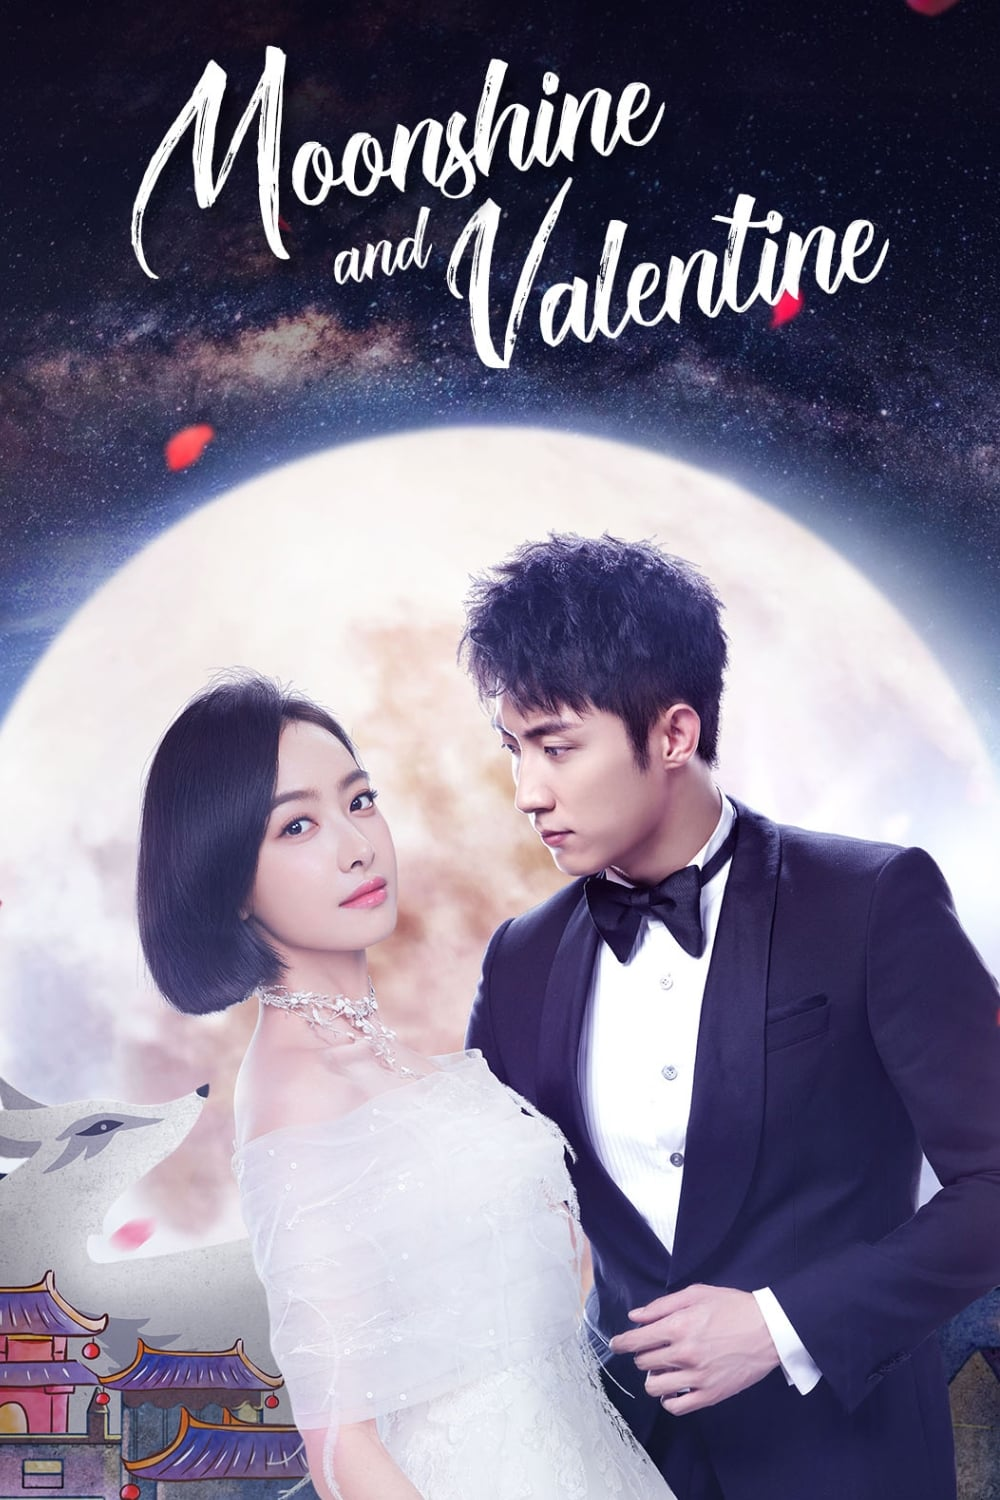 Moonshine and Valentine (2018)